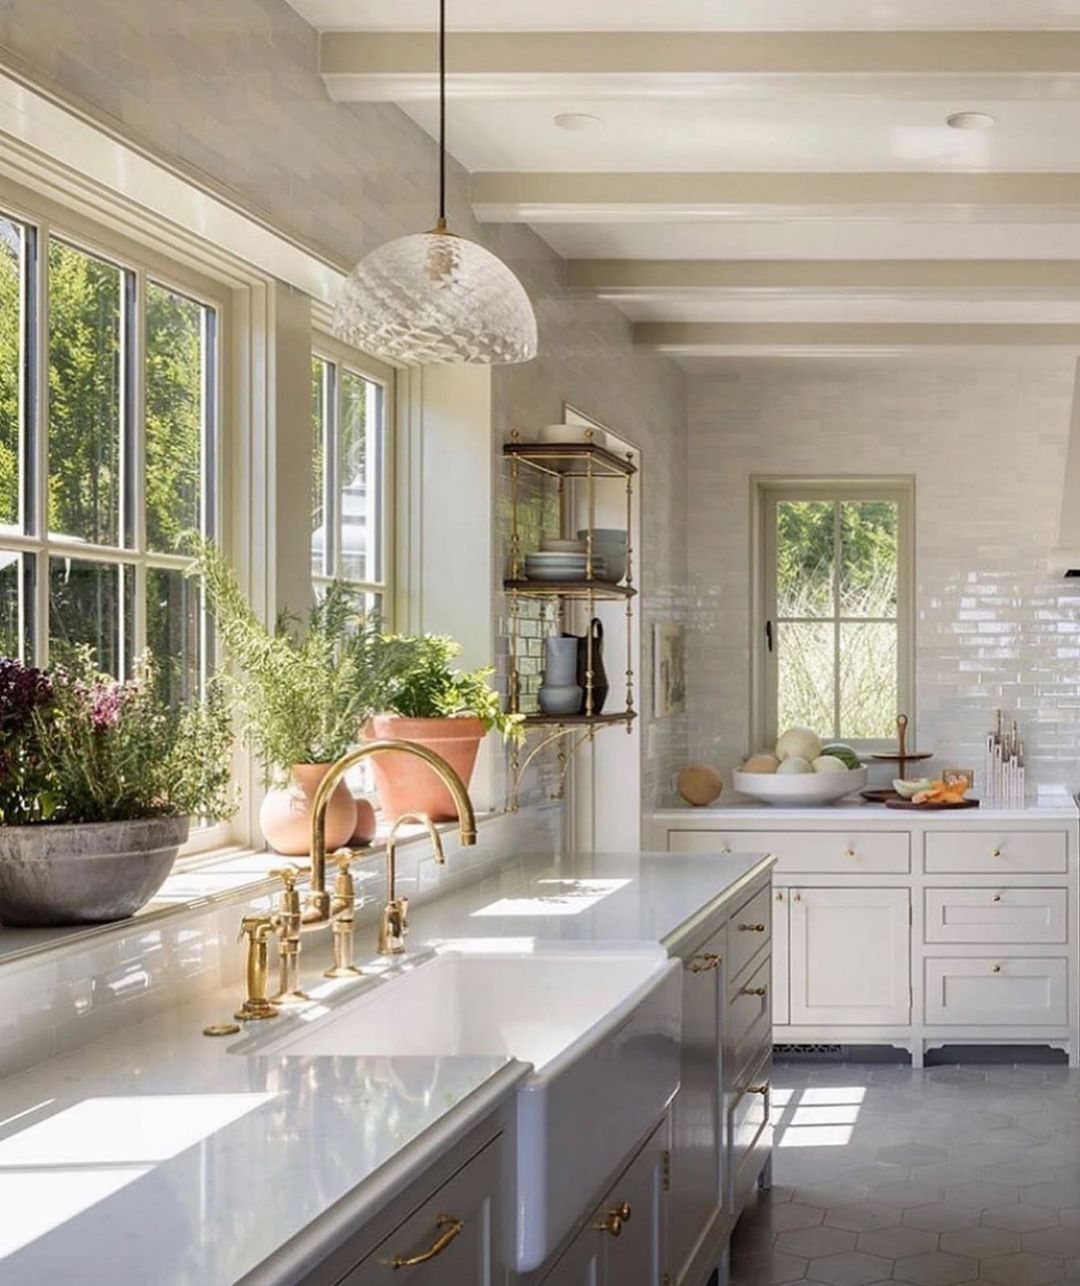 Three Fool Proof Tips For Picking Your Perfect Tile One Coast Design In 2021 Kitchen Design Kitchen Inspirations Home